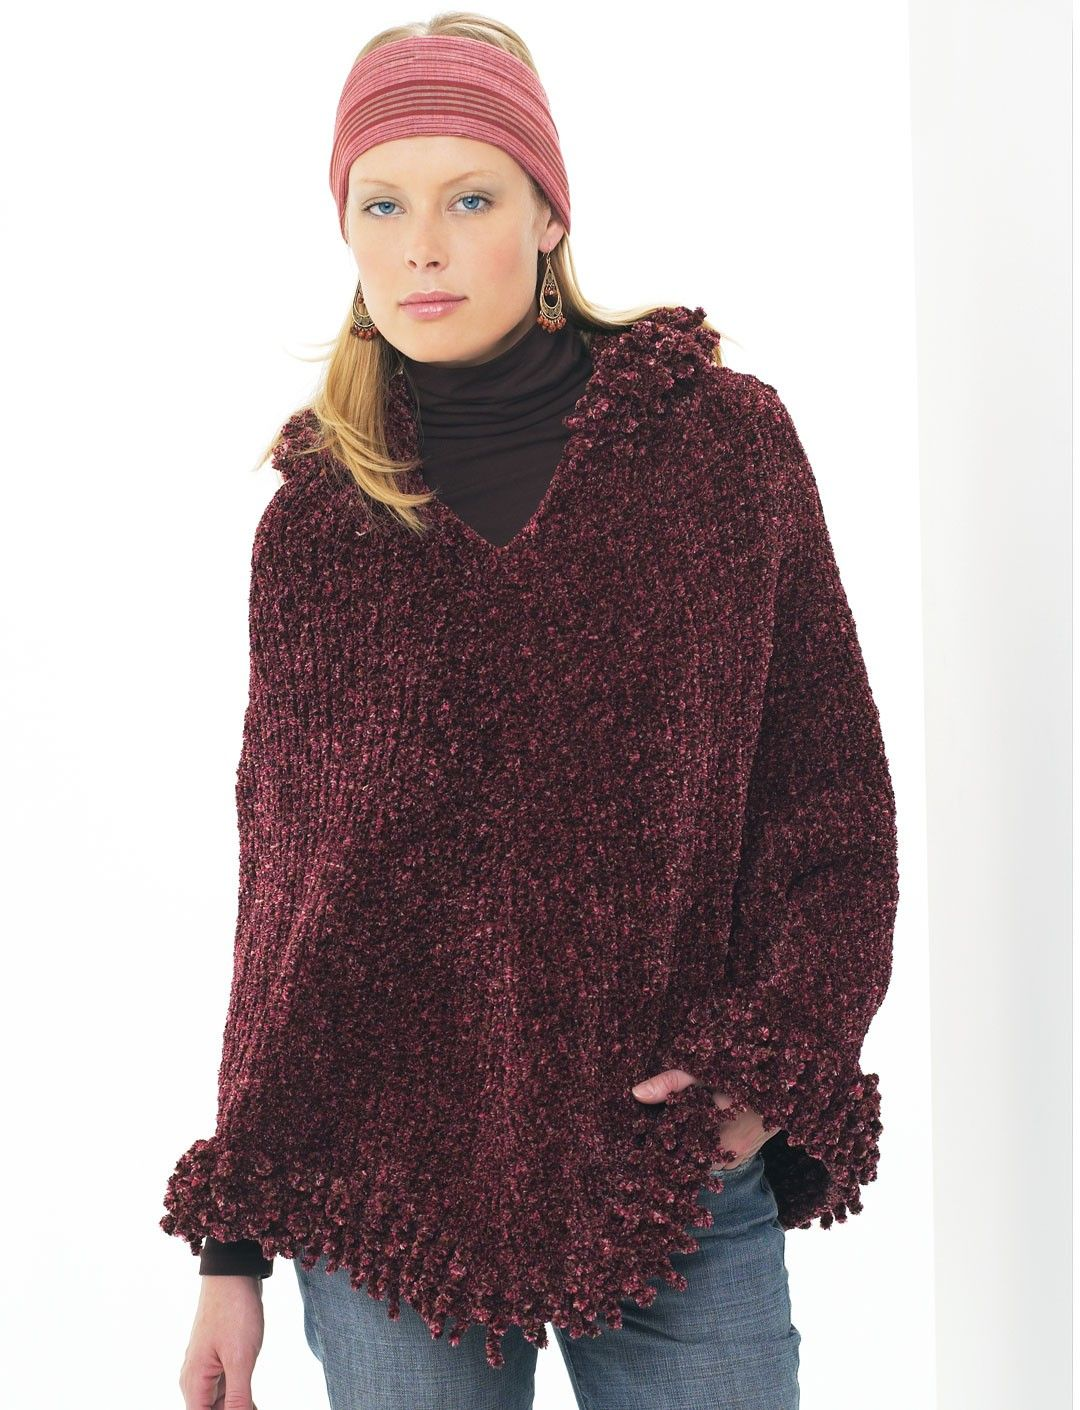 Hooded Poncho Pattern Amazing Design Ideas